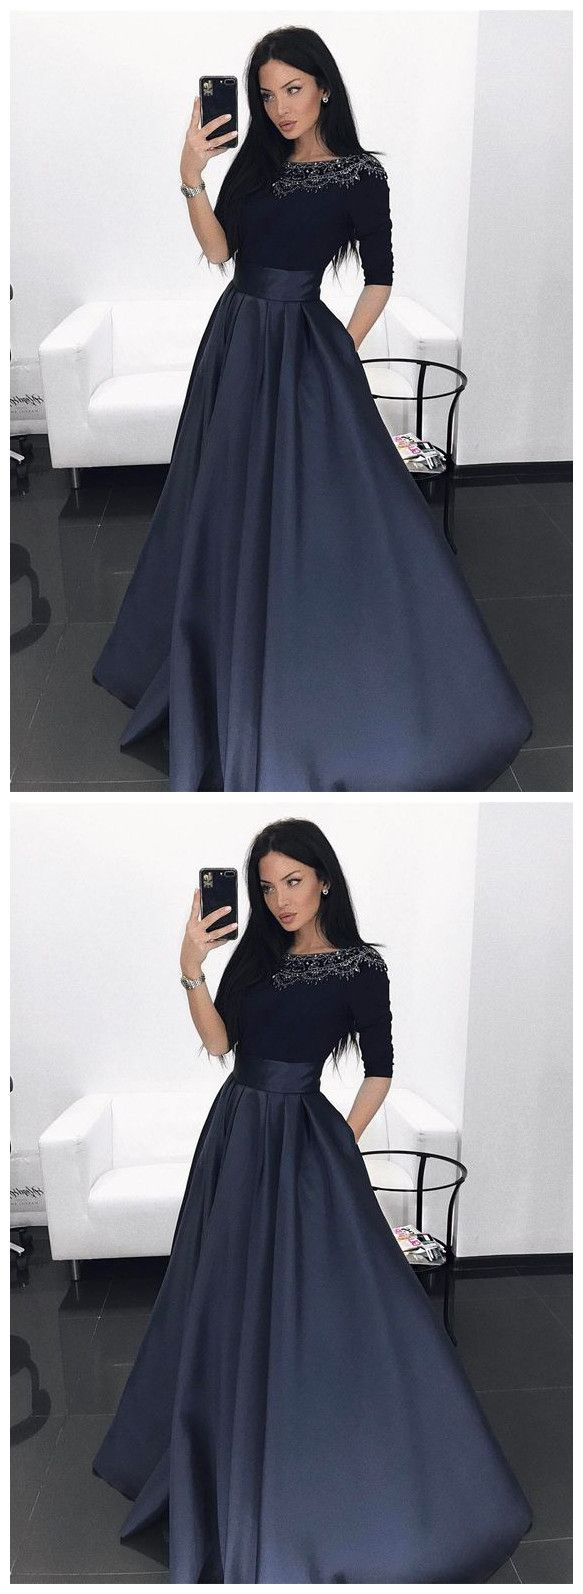 Prom dress elegant navy prom party dresses with half sleeves beaded